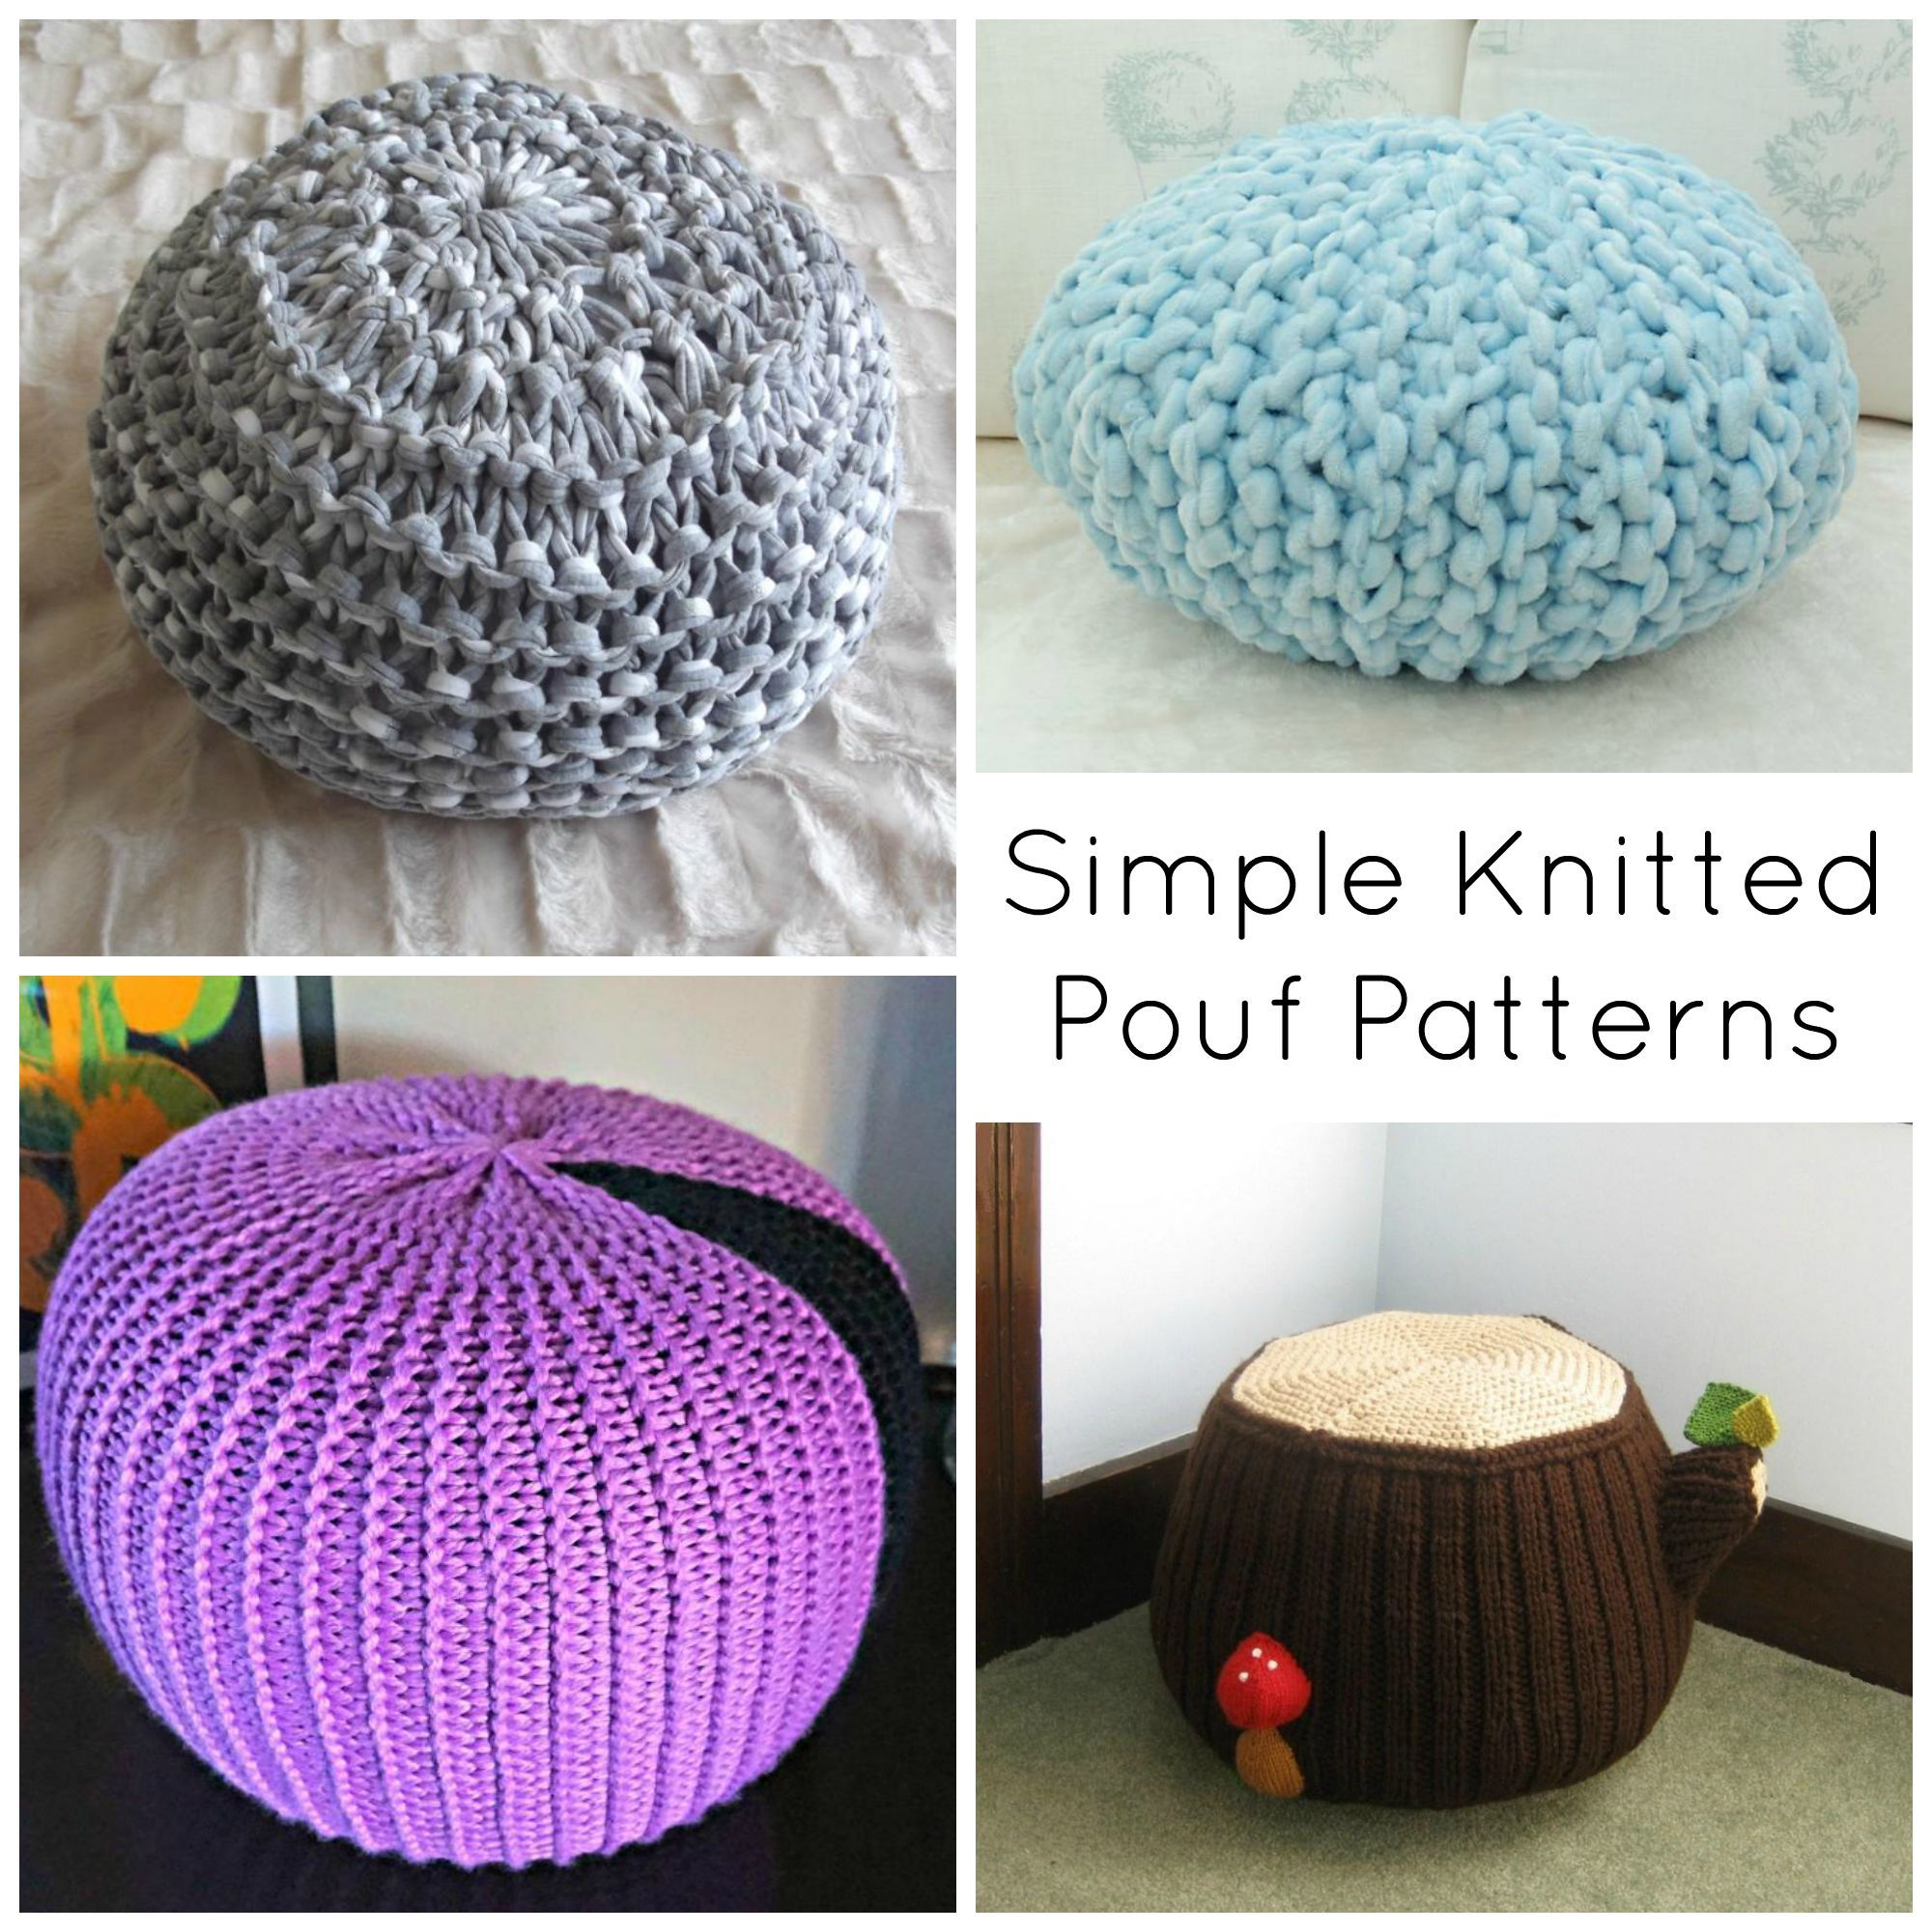 Knitted Pouf Patterns - On Craftsy | Knitted pouf, Patterns and Knit ...